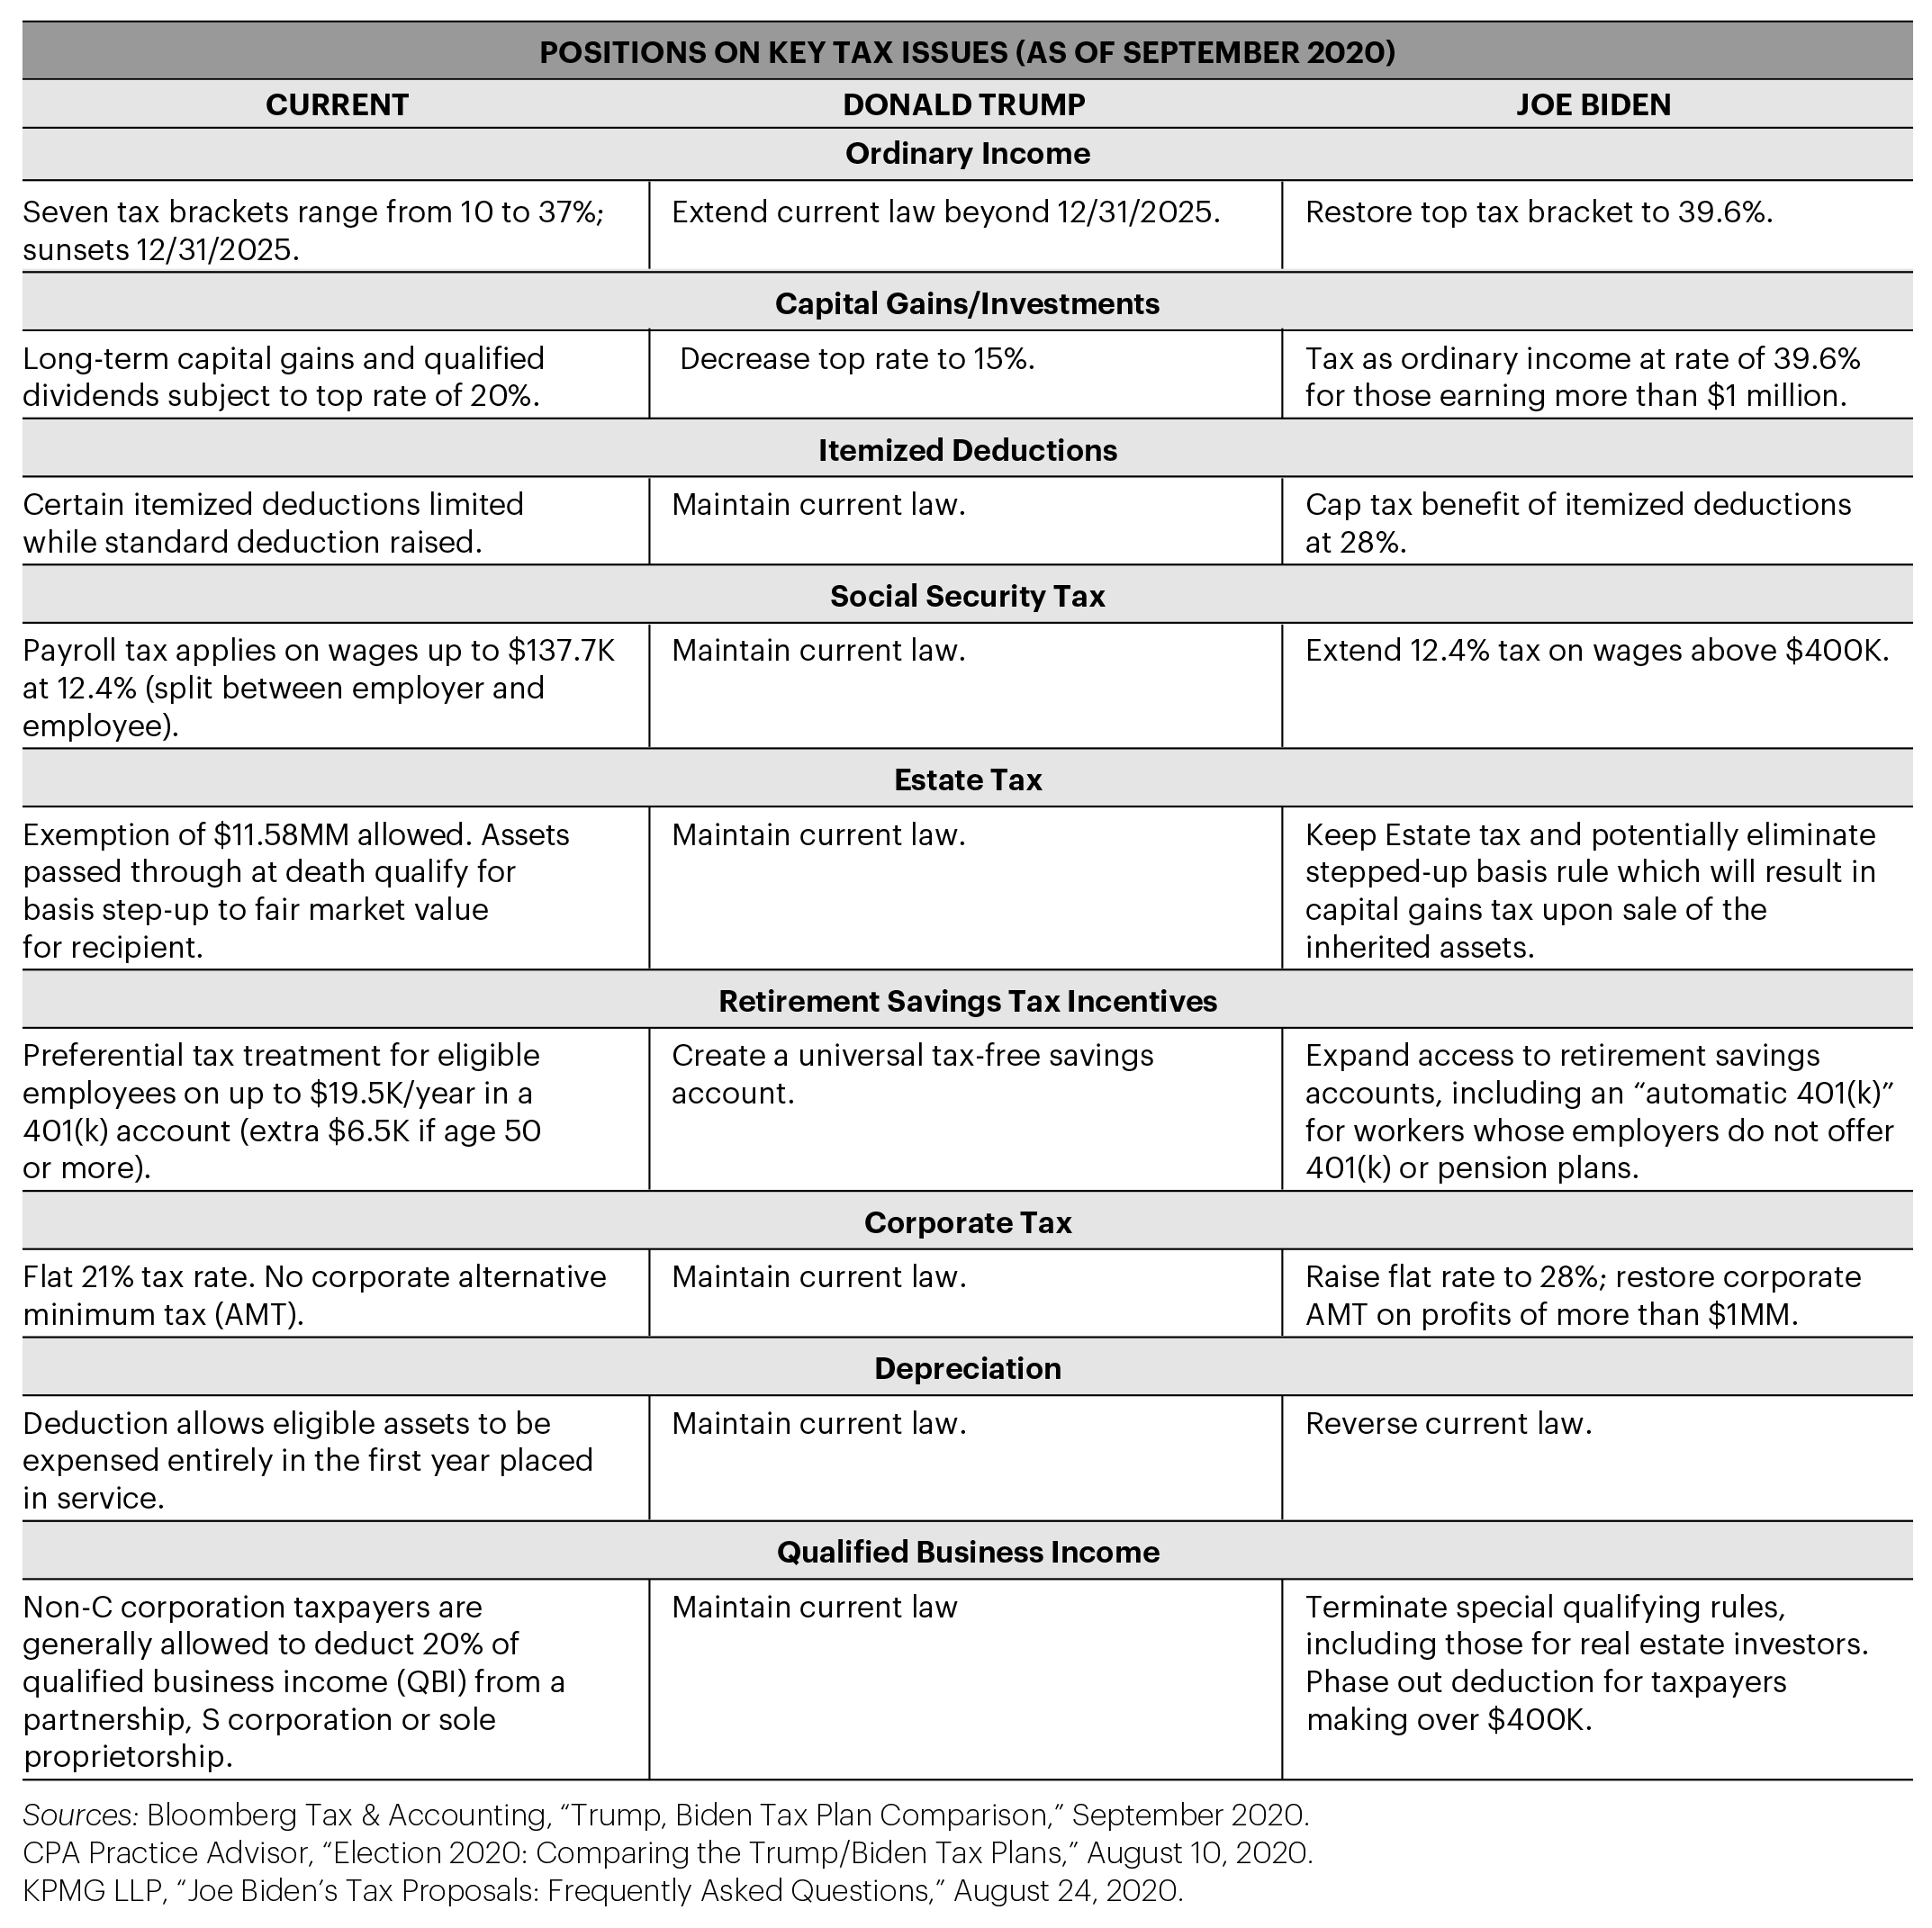 Key tax issues table